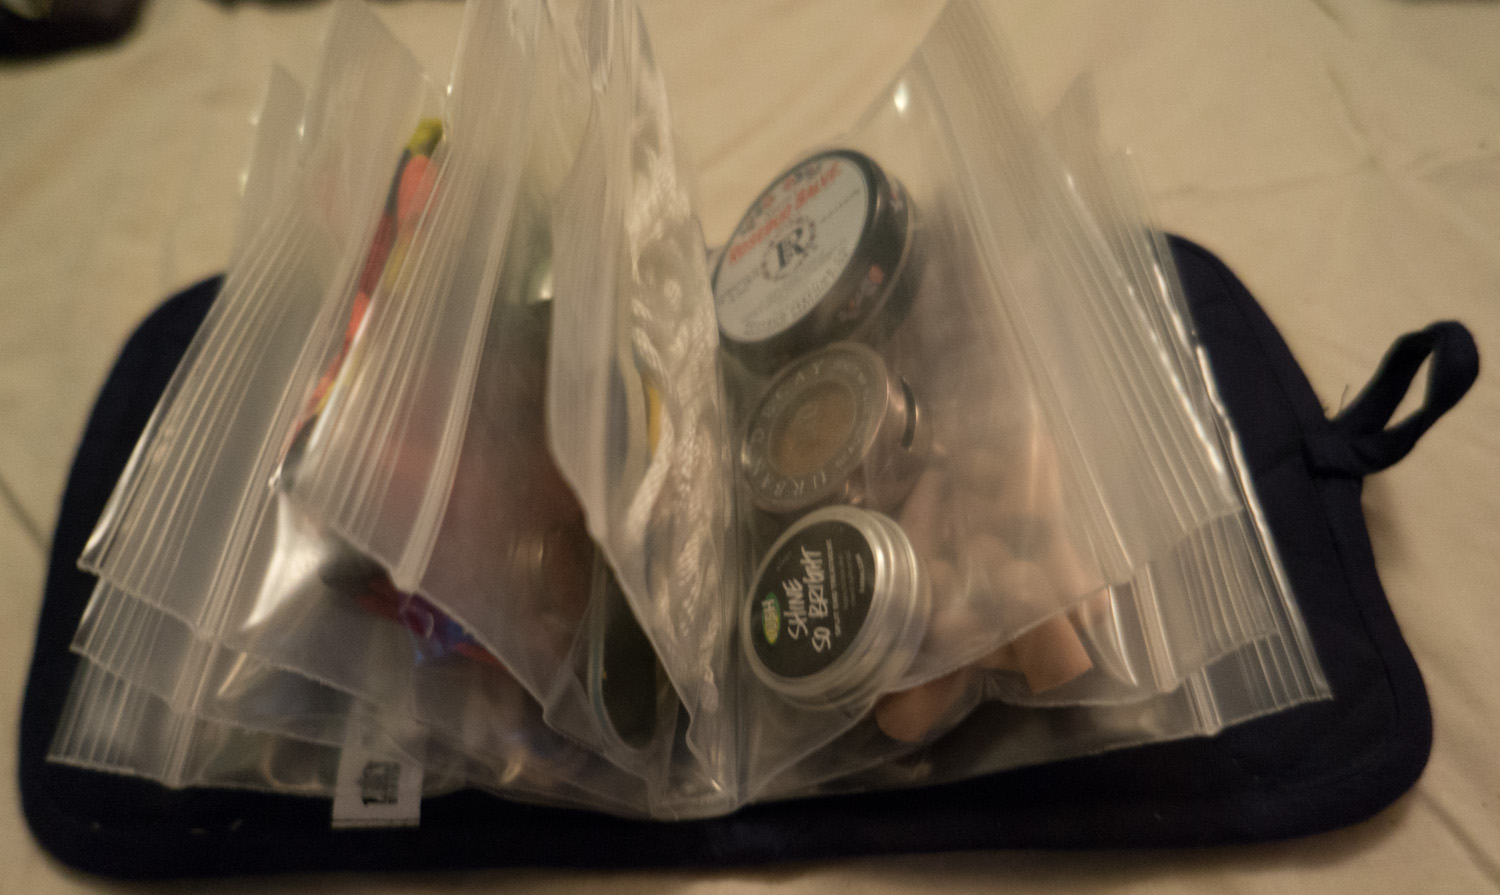 """Beth's """"Bag of Awesome""""  Contains sewing kit, safety pins, earplugs, lip balm, eye shadow, pomade, string, rubber bands, scissors, mini cuticle cutter, nail file, tweezers, buff bandana, concealer, q-tips, hair bands."""